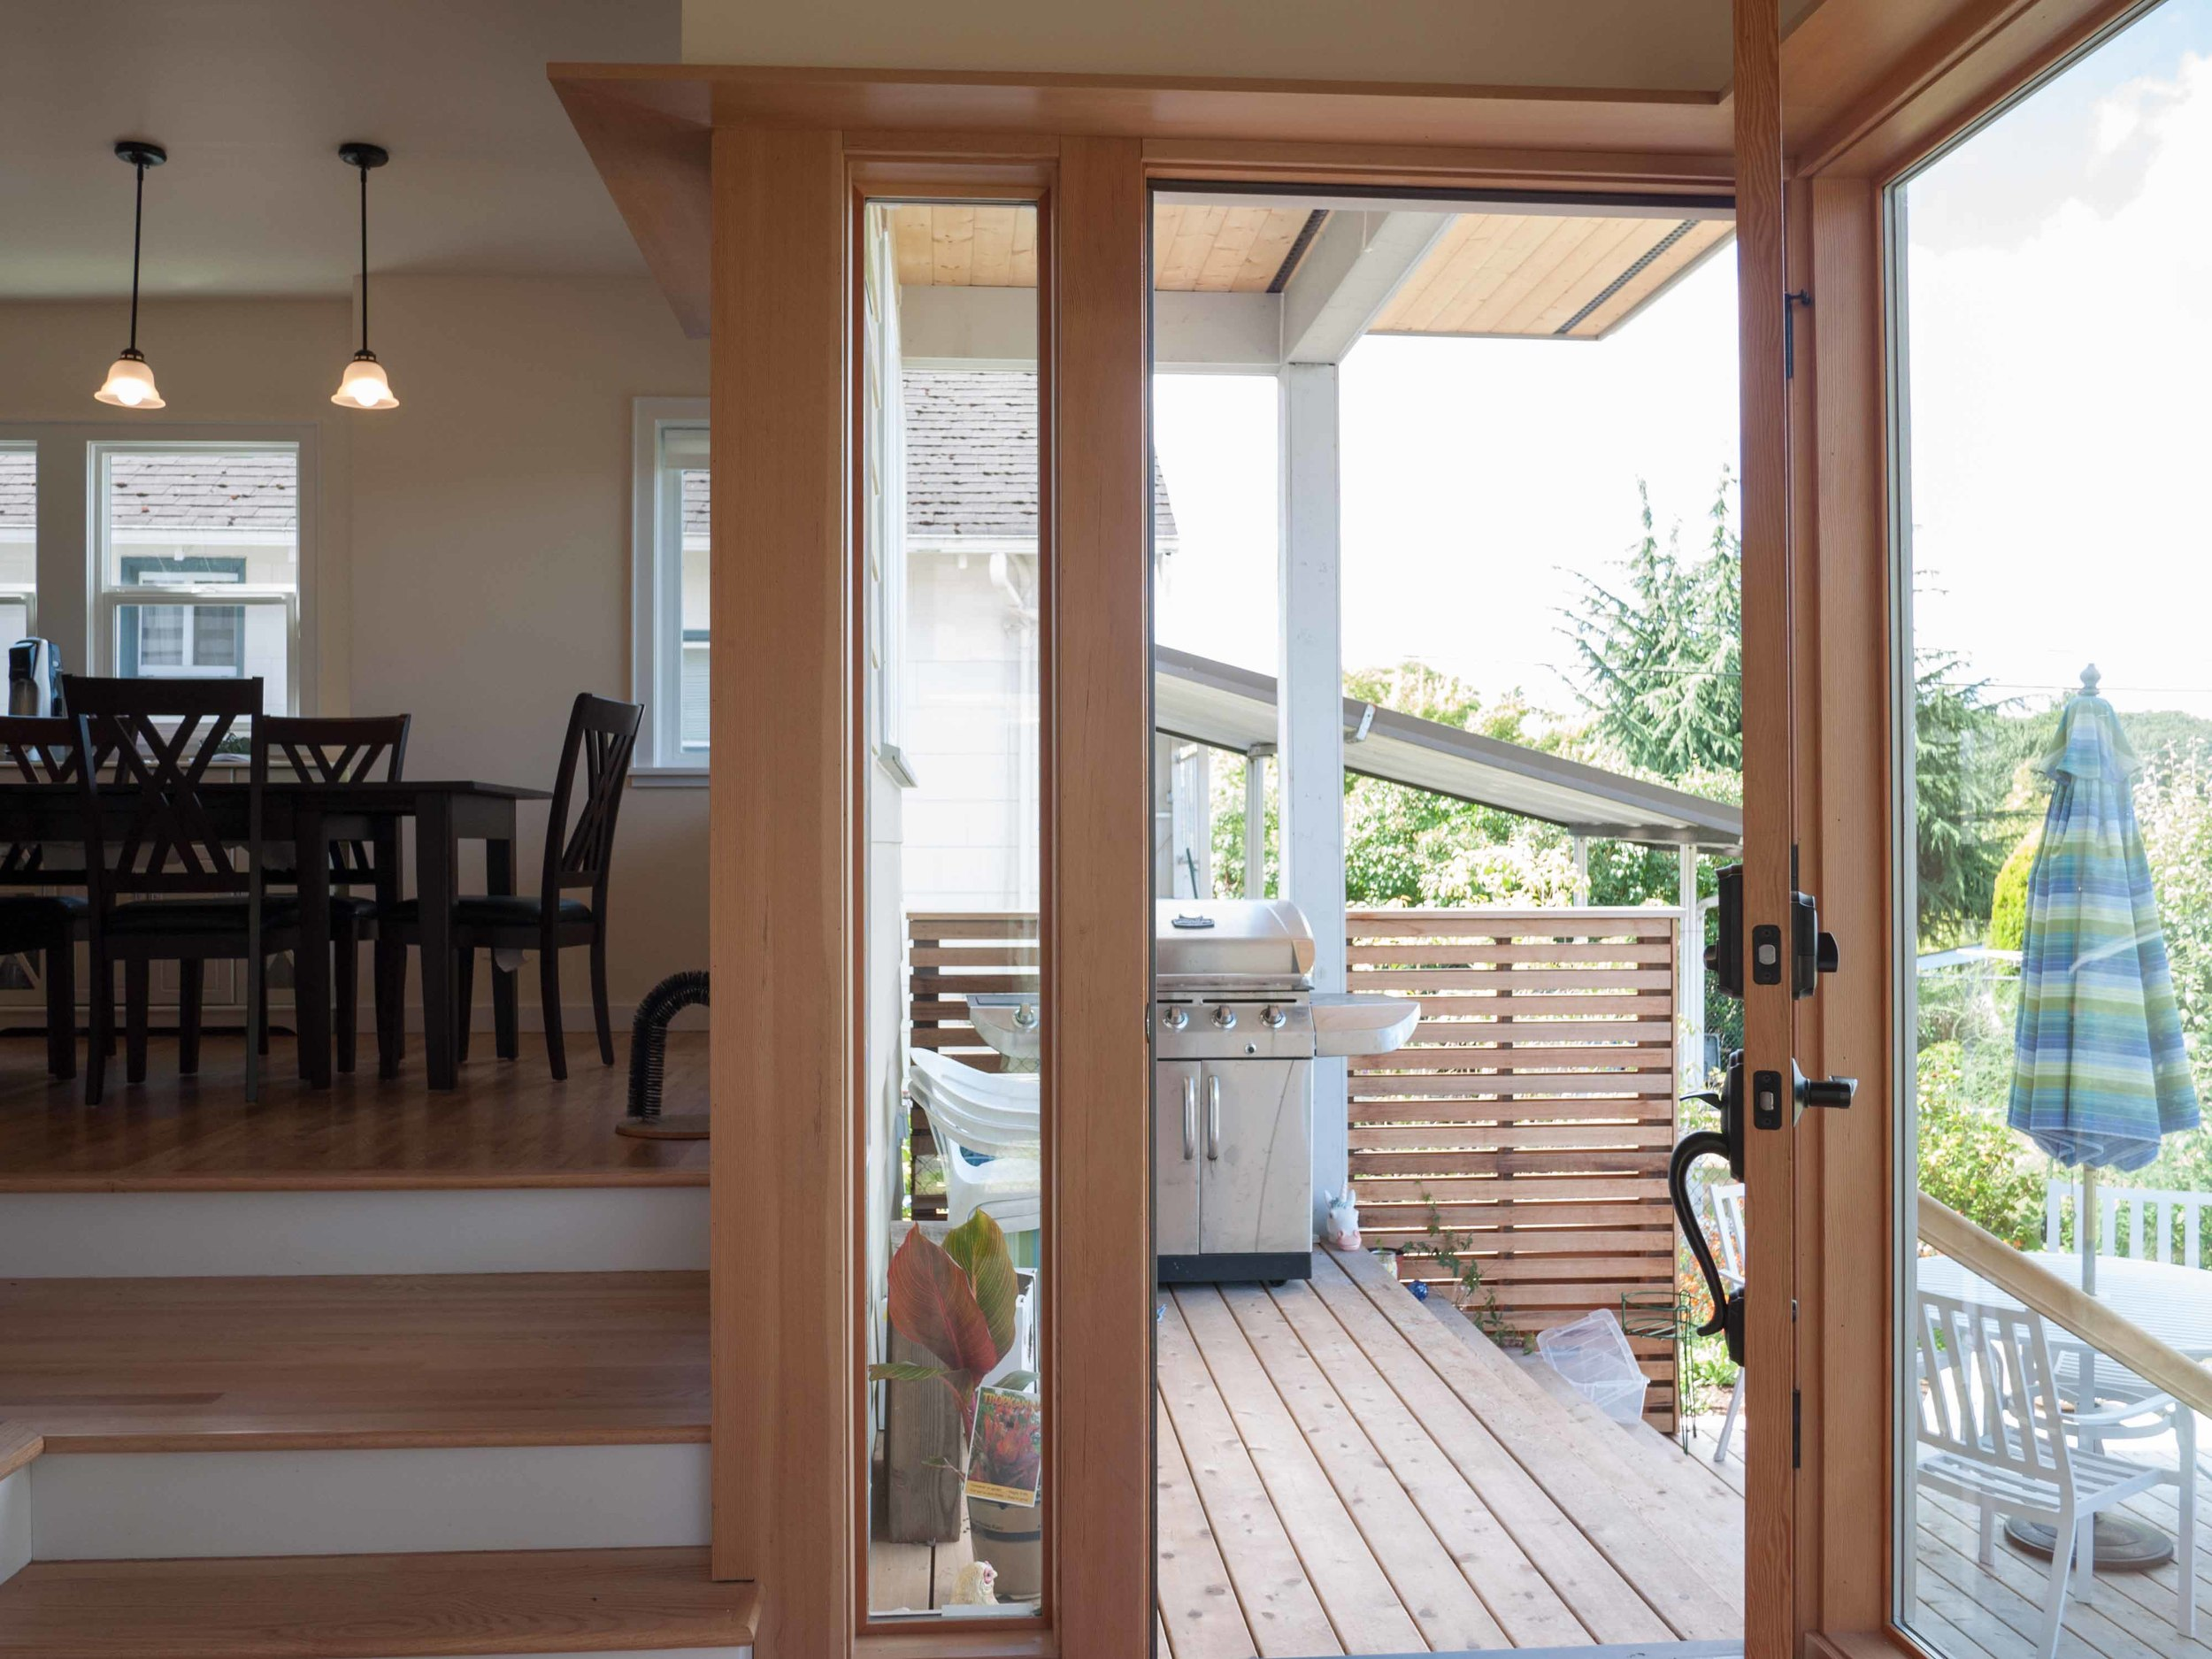 The mudroom opens to the outdoor deck. The ledge above the windows and doors provides a catwalk for our clients' cats.